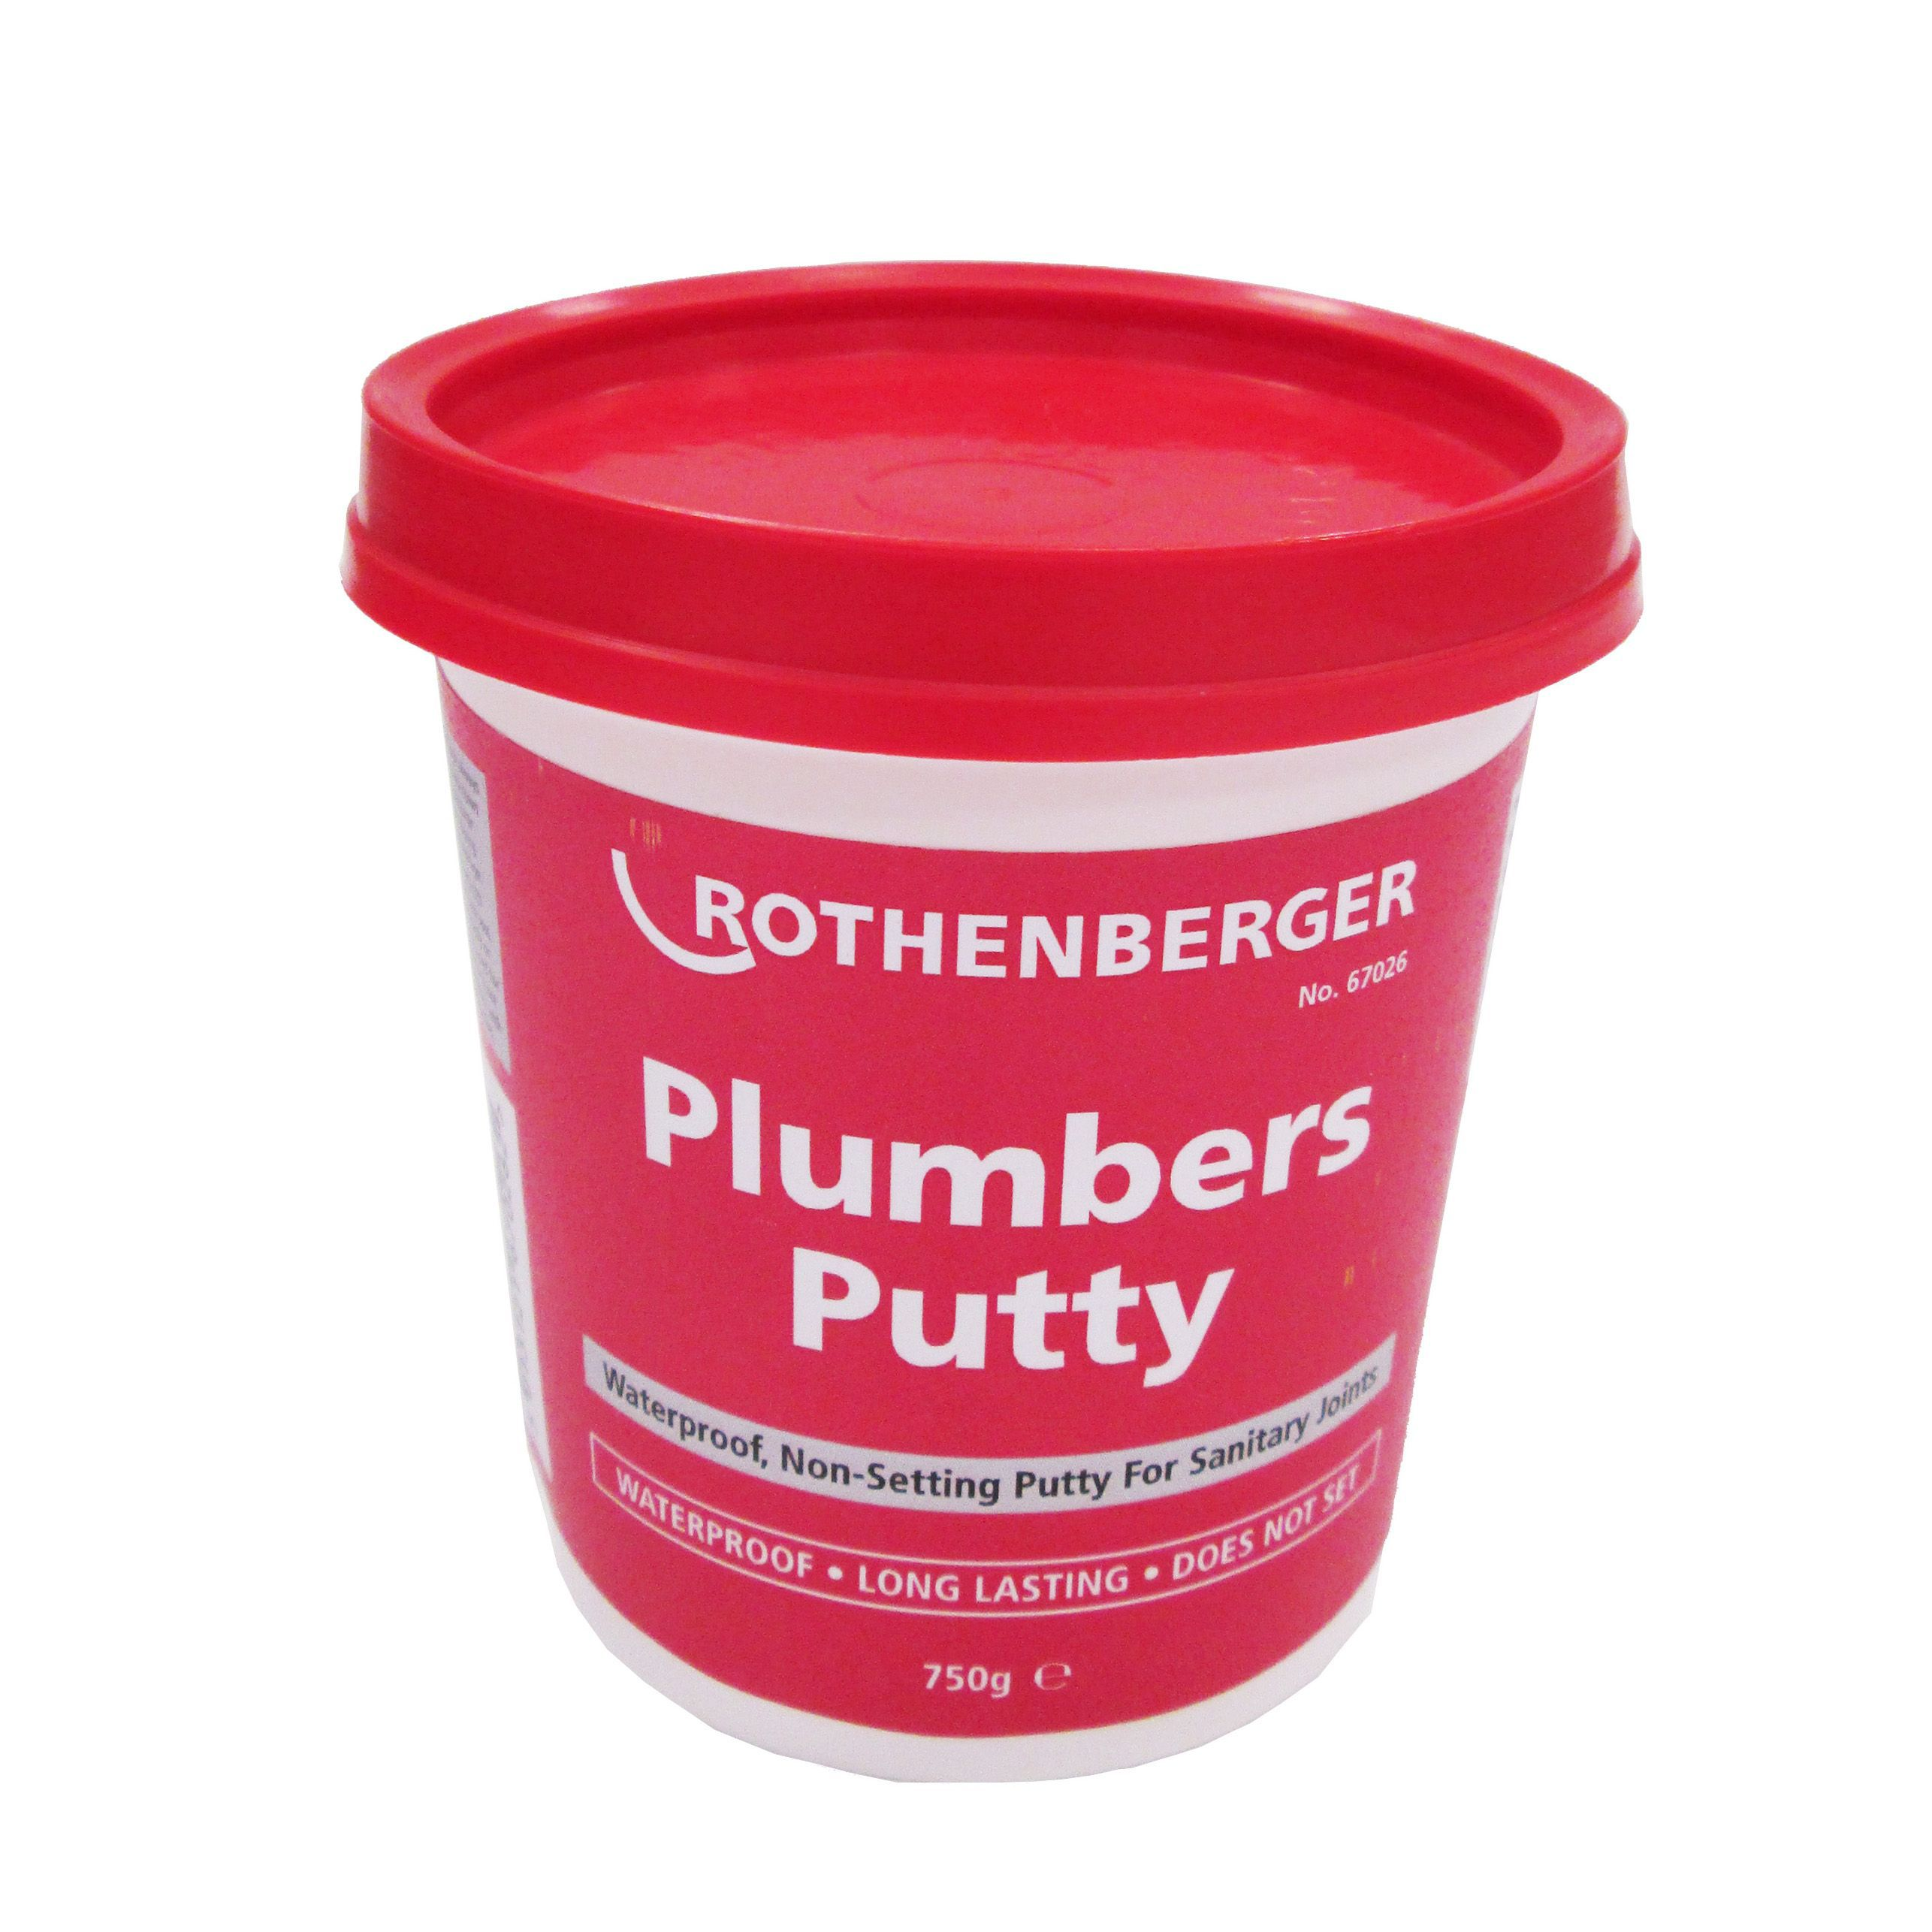 Rothenberger Plumbers putty 750 g | Departments | DIY at B&Q